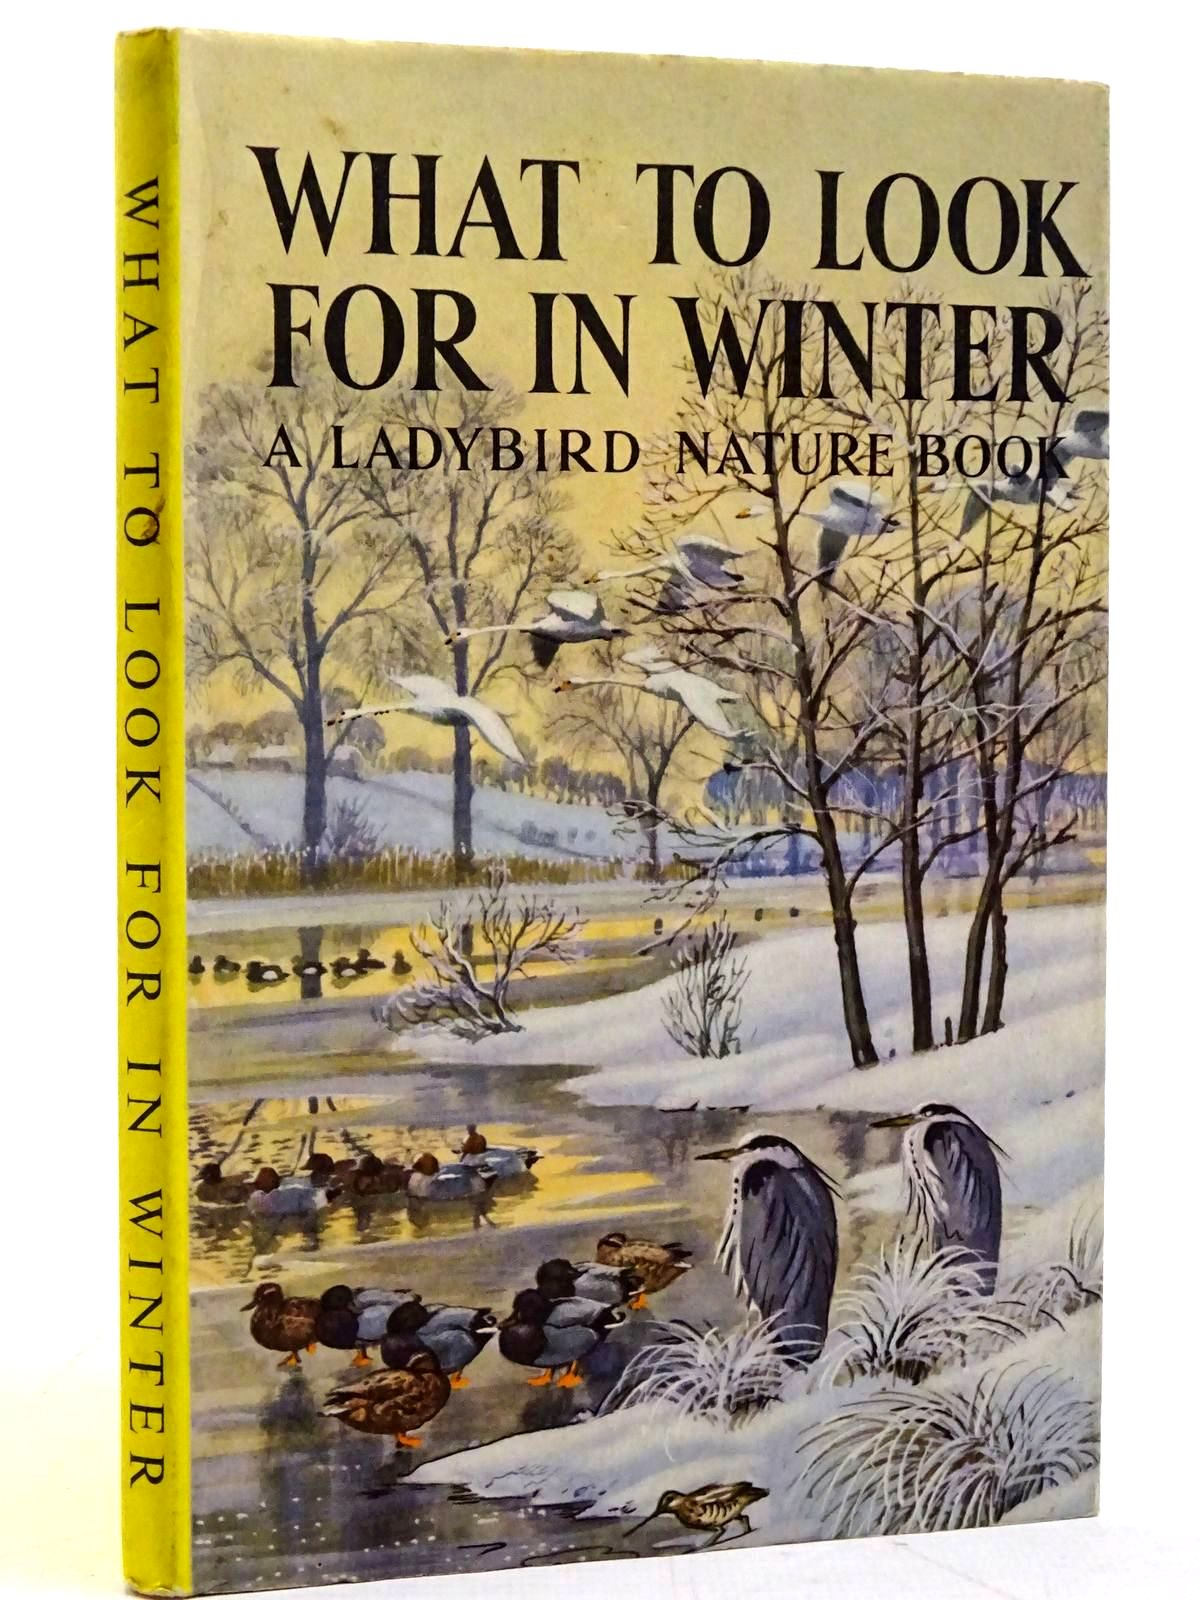 Photo of WHAT TO LOOK FOR IN WINTER written by Watson, E.L. Grant illustrated by Tunnicliffe, C.F. published by Wills & Hepworth Ltd. (STOCK CODE: 2131168)  for sale by Stella & Rose's Books